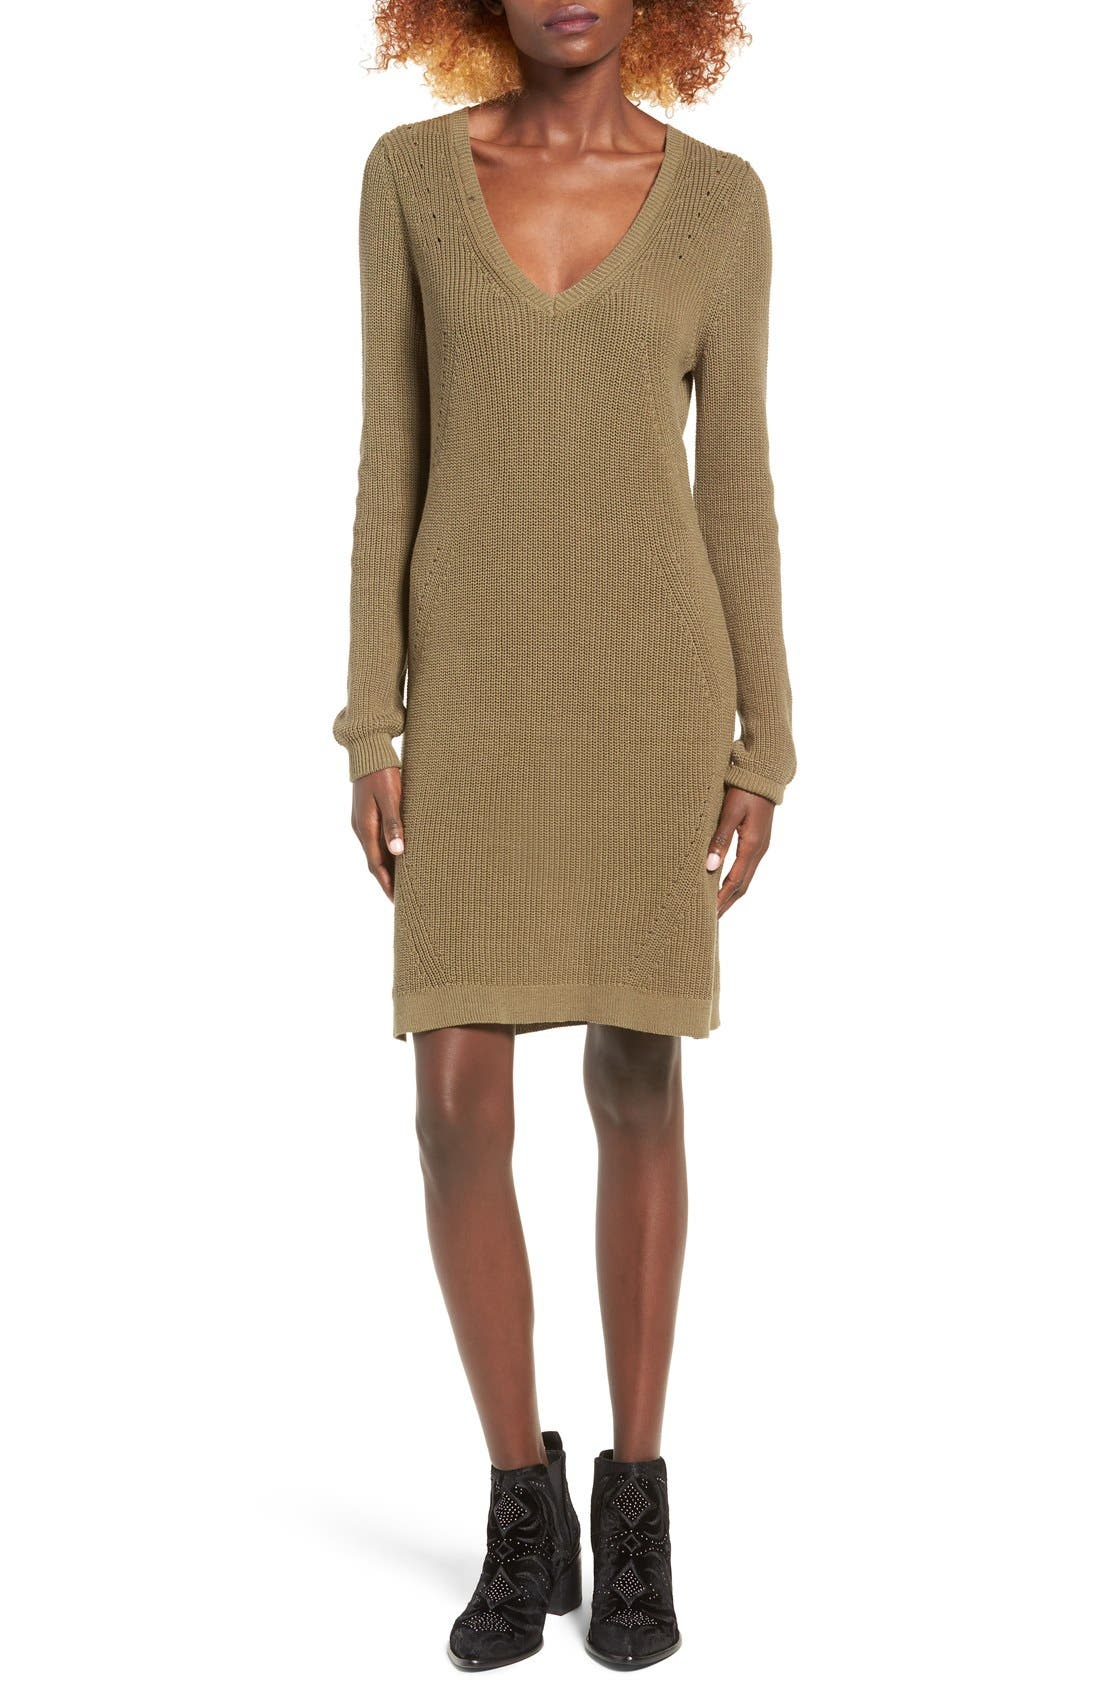 Alternate Image 1 Selected - BP. Shaker Stitch Sweater Dress